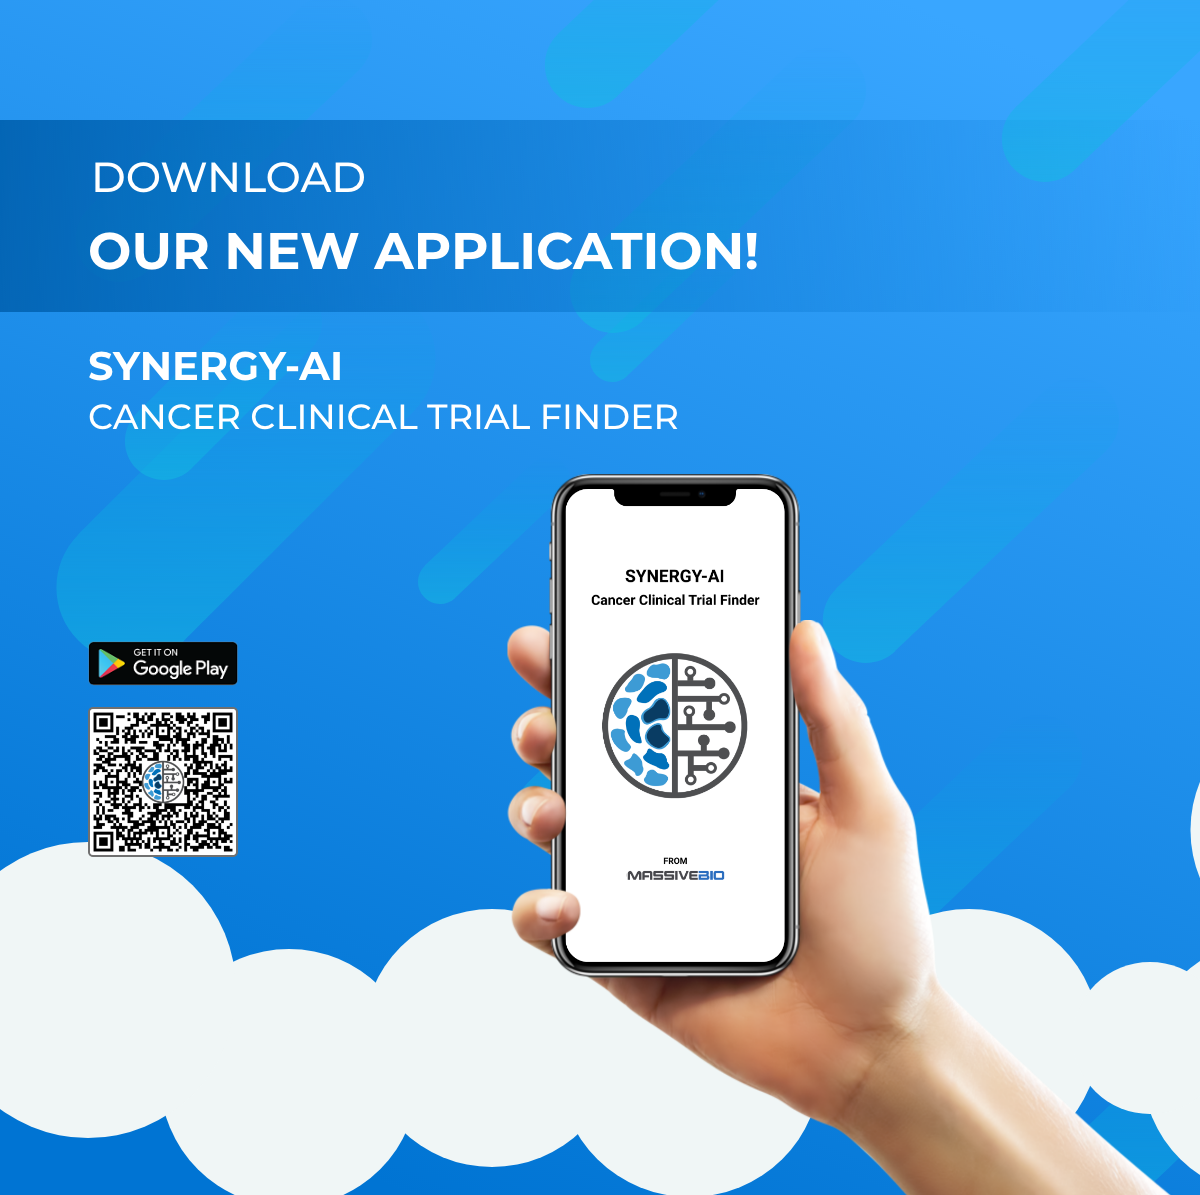 Download our new app! The Synergy-AI Cancer Clinical Trial Finder matches patients with #clinicaltrials and pre-screens them instantly. #Cancercare #Trials #AI  Download here: